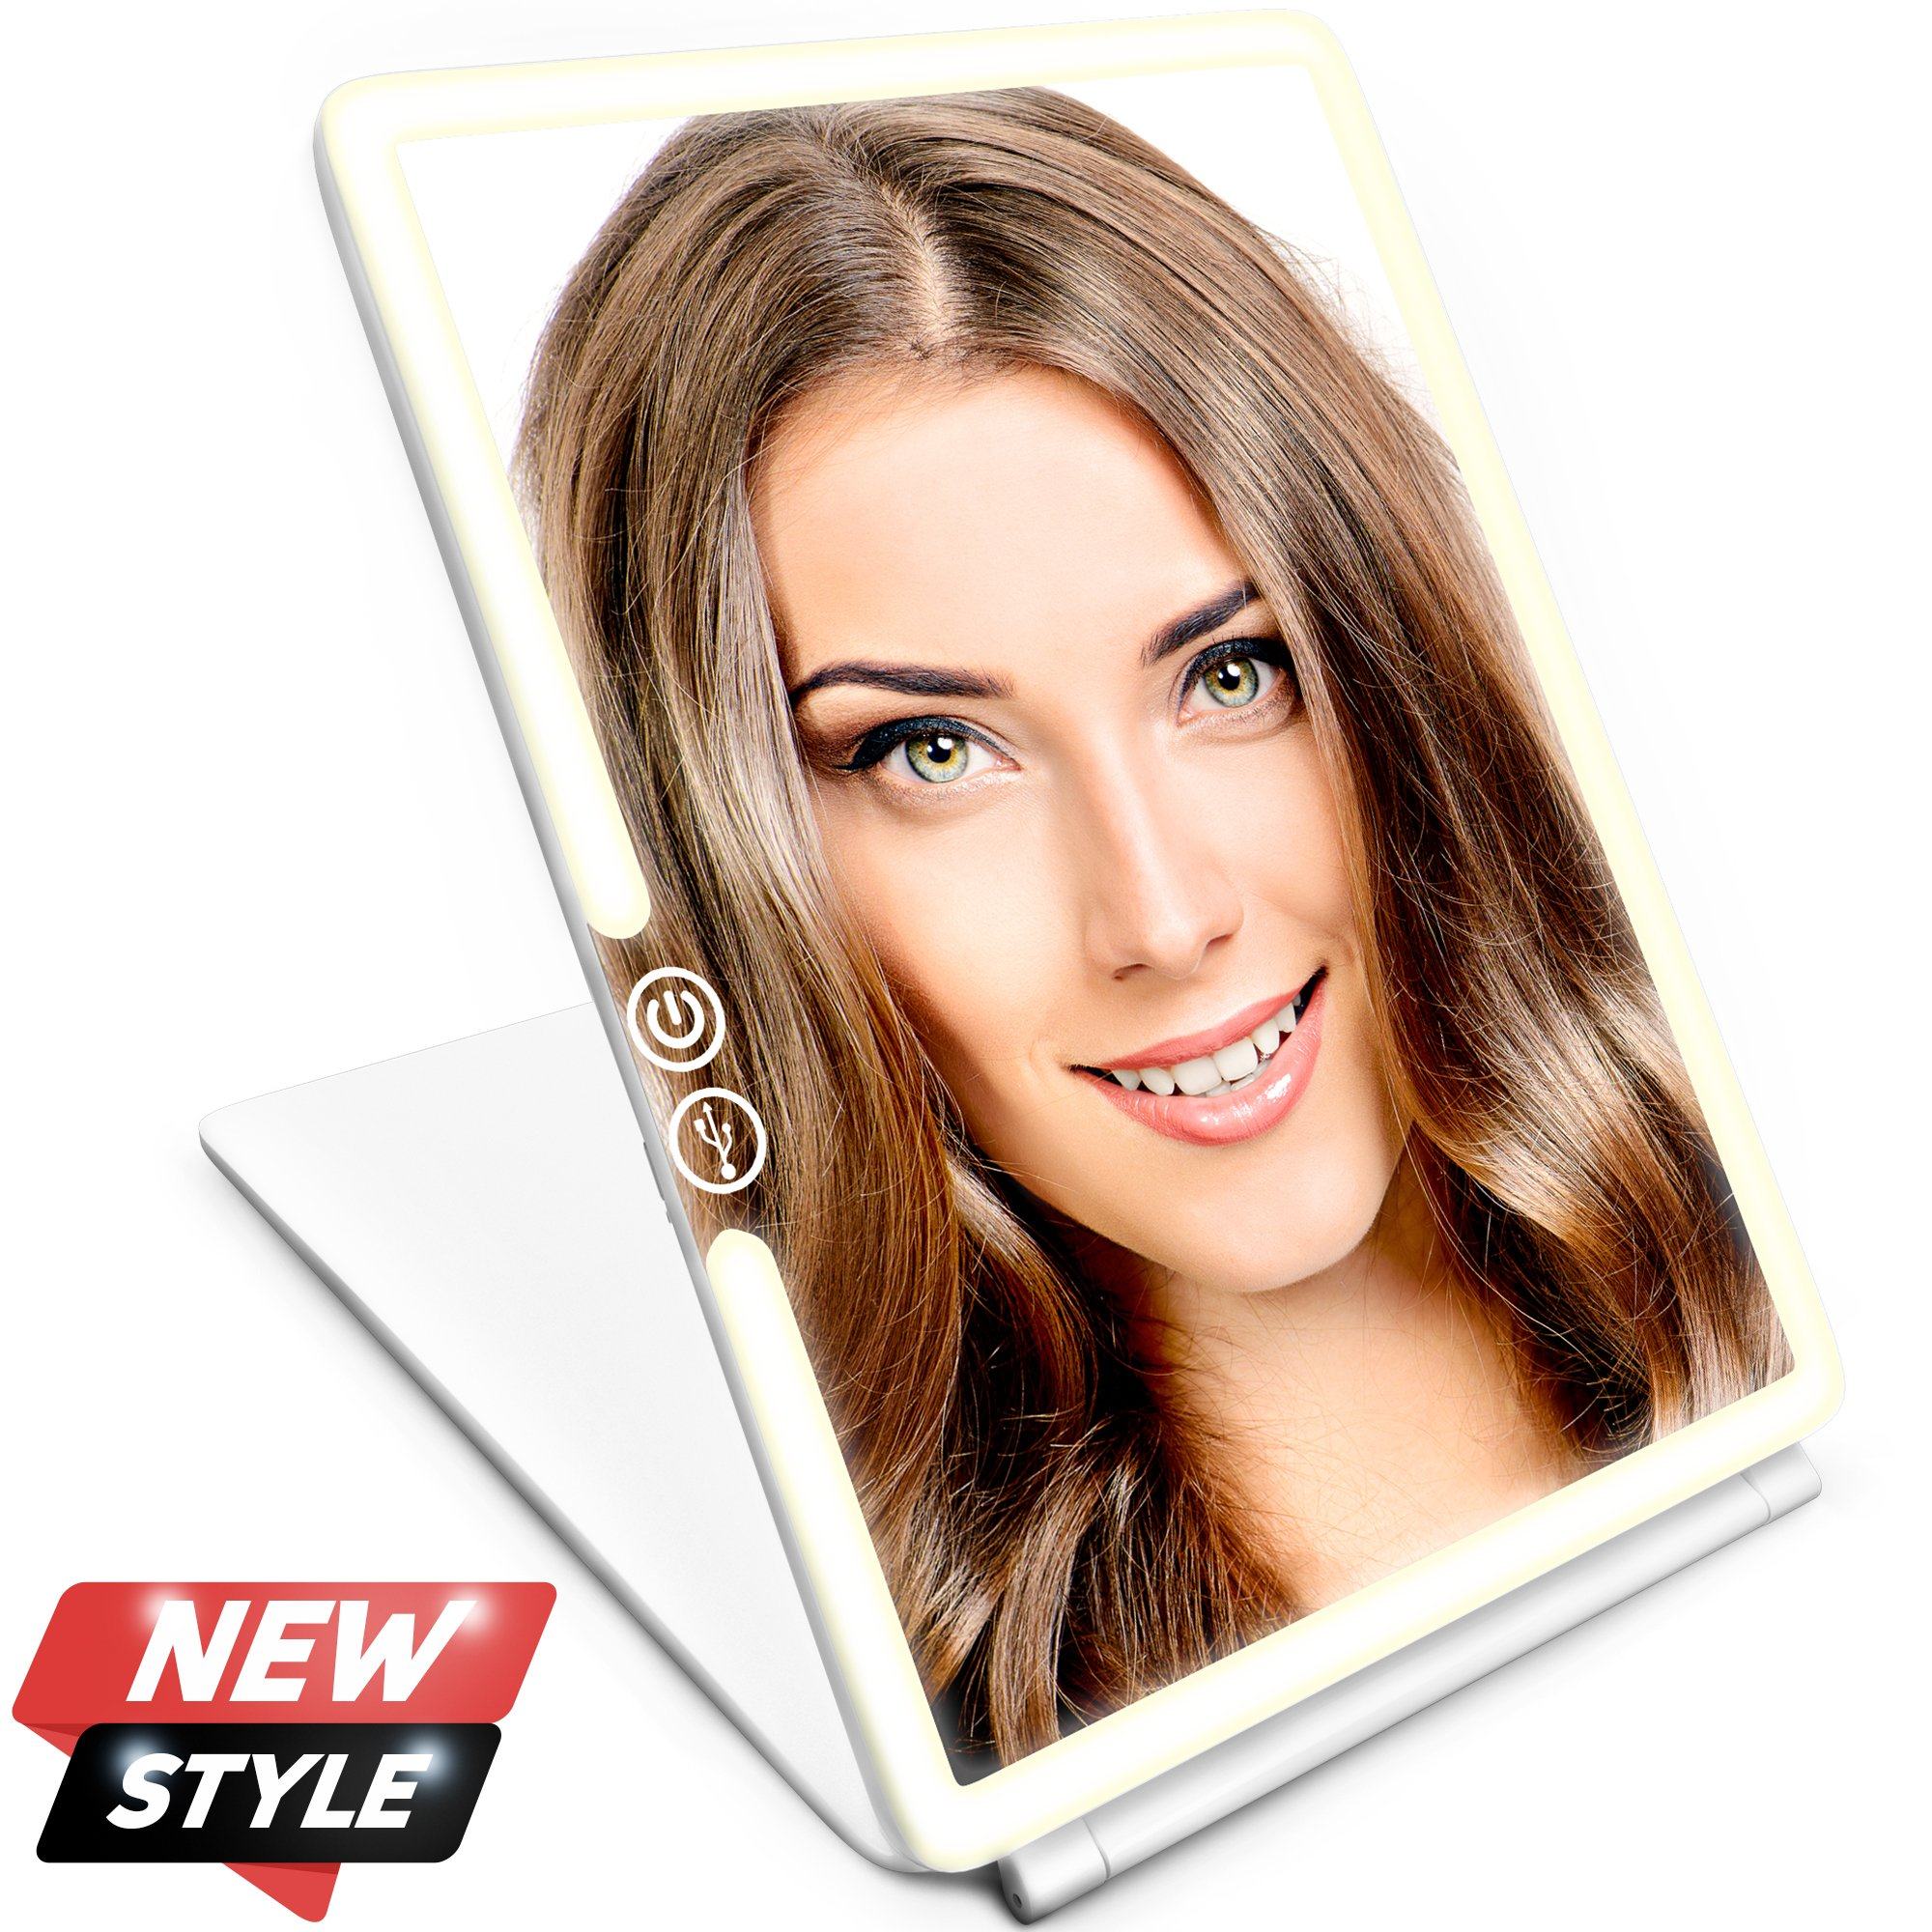 Makeup Mirror - Vanity Mirror - Cosmetic LED Mirror for women - LED Mirror for beautiful you